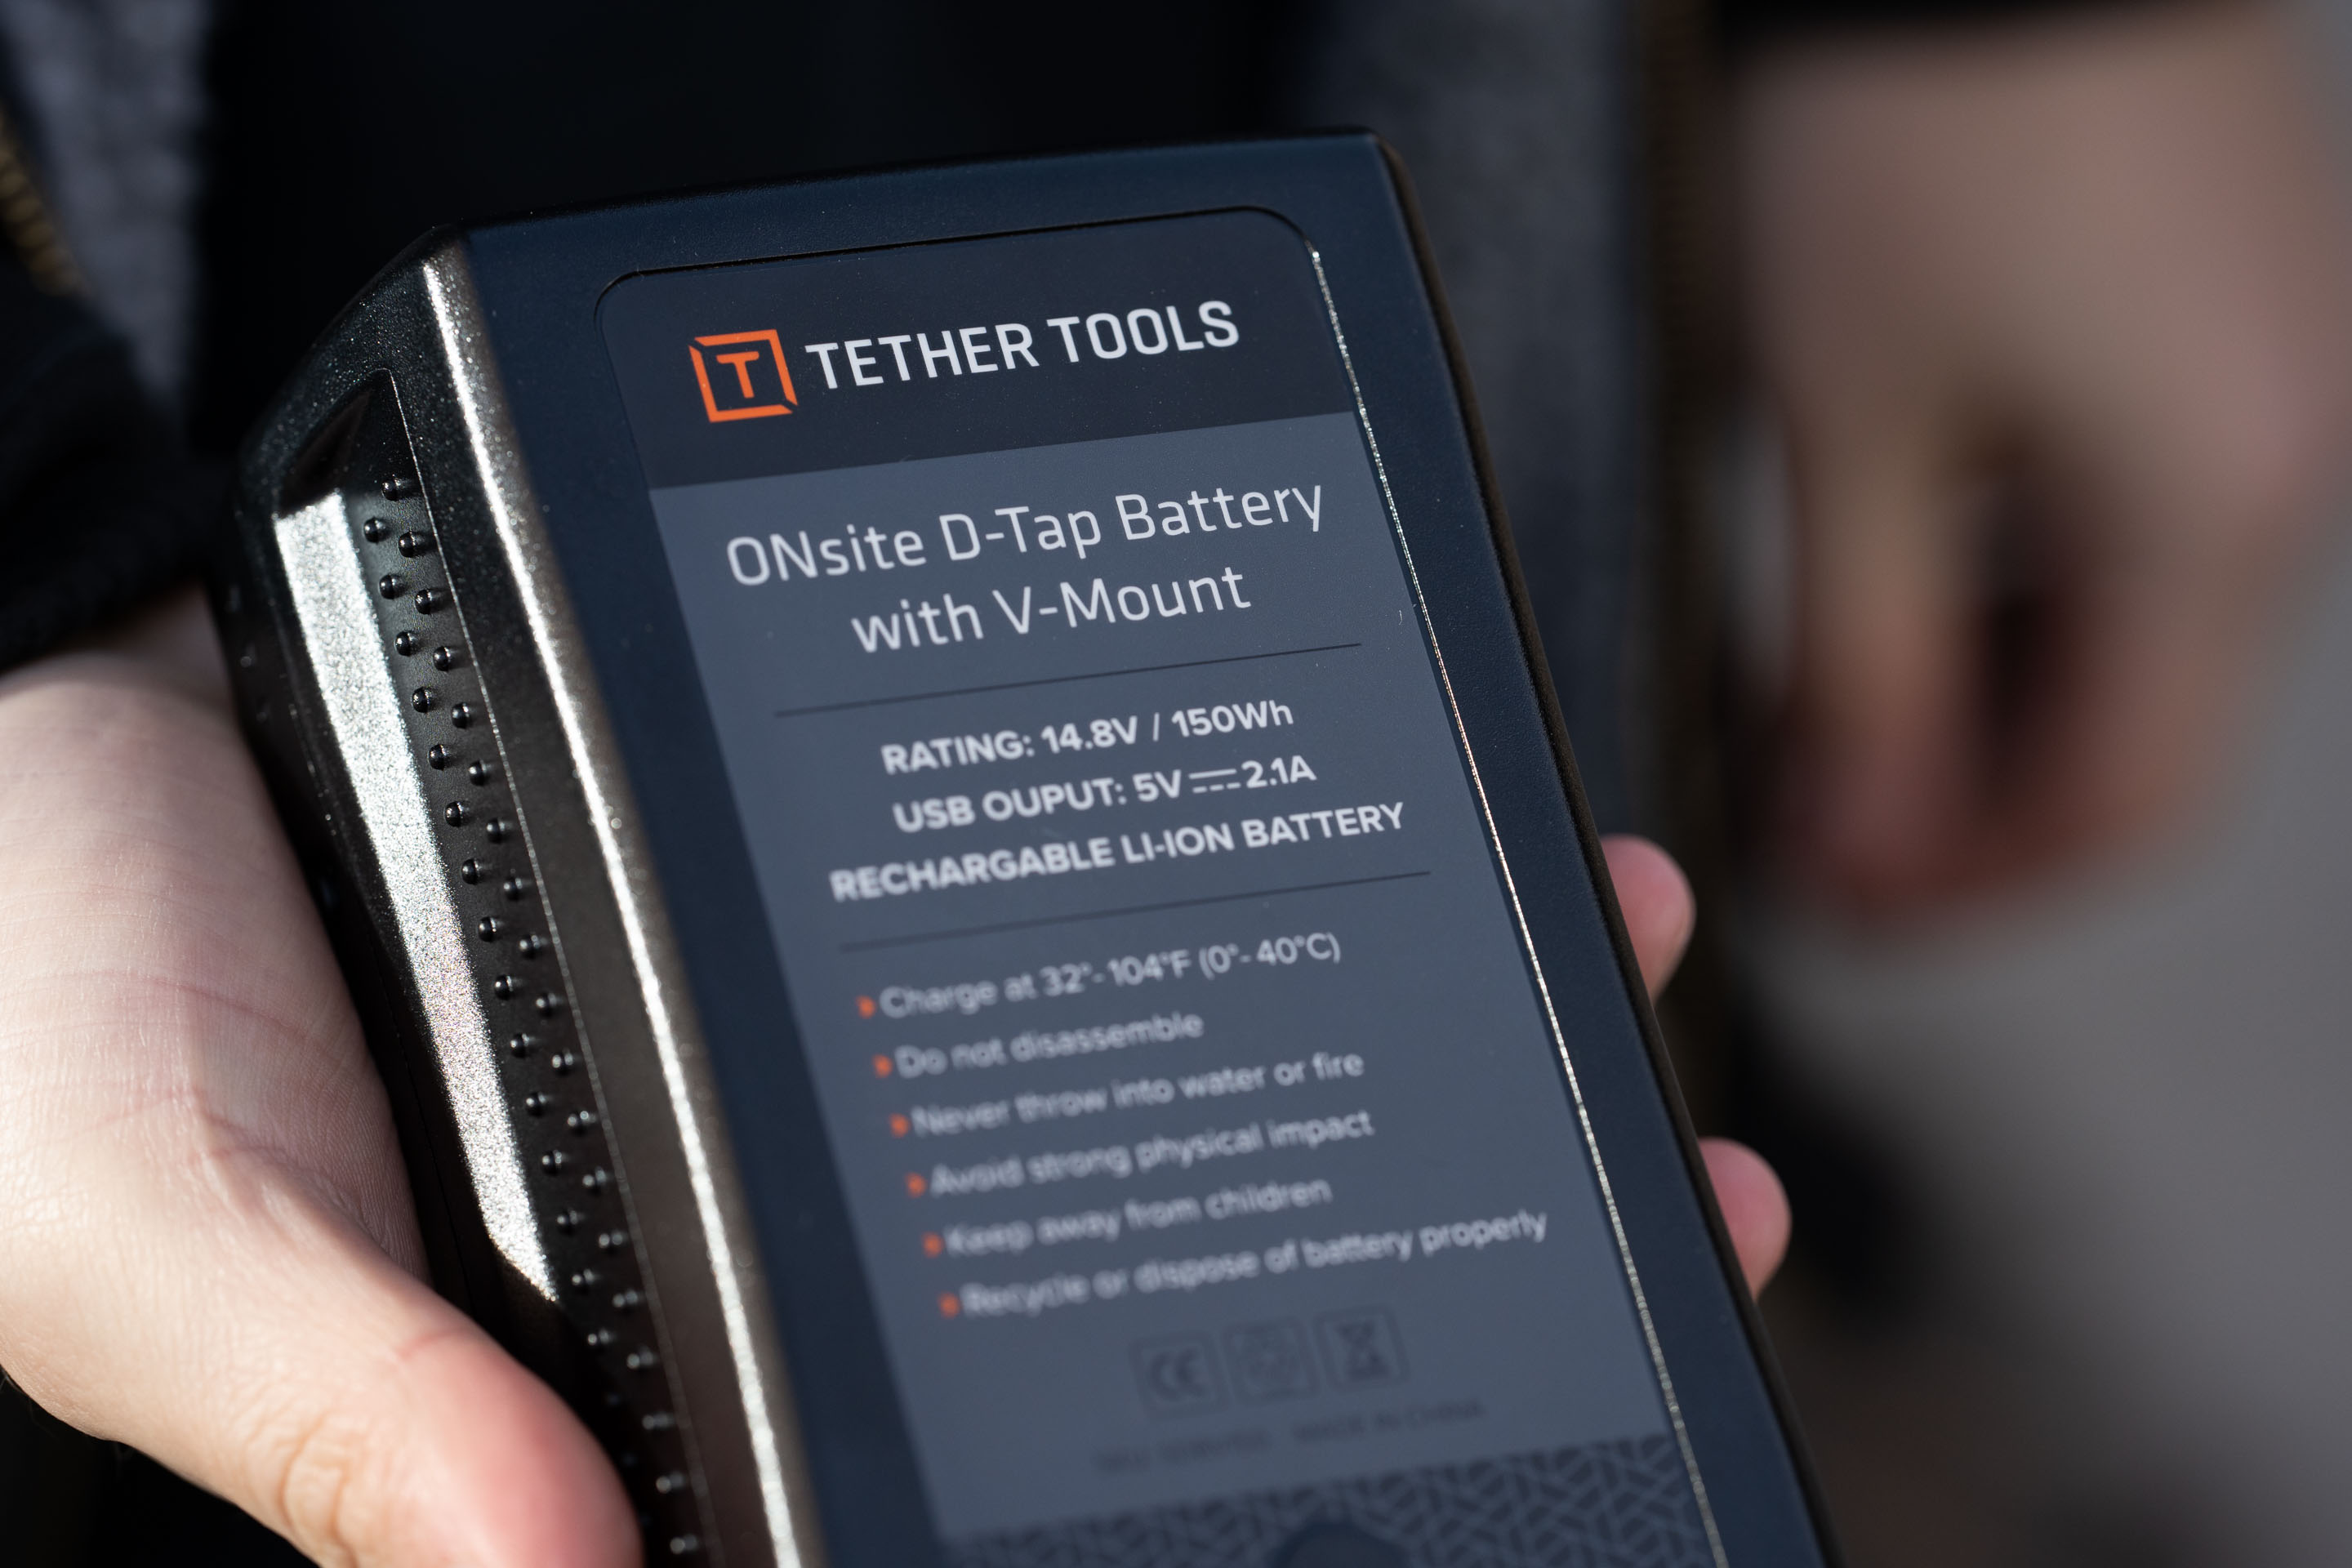 Bring Power ONsite with Tether Tools Latest System   B&H Explora